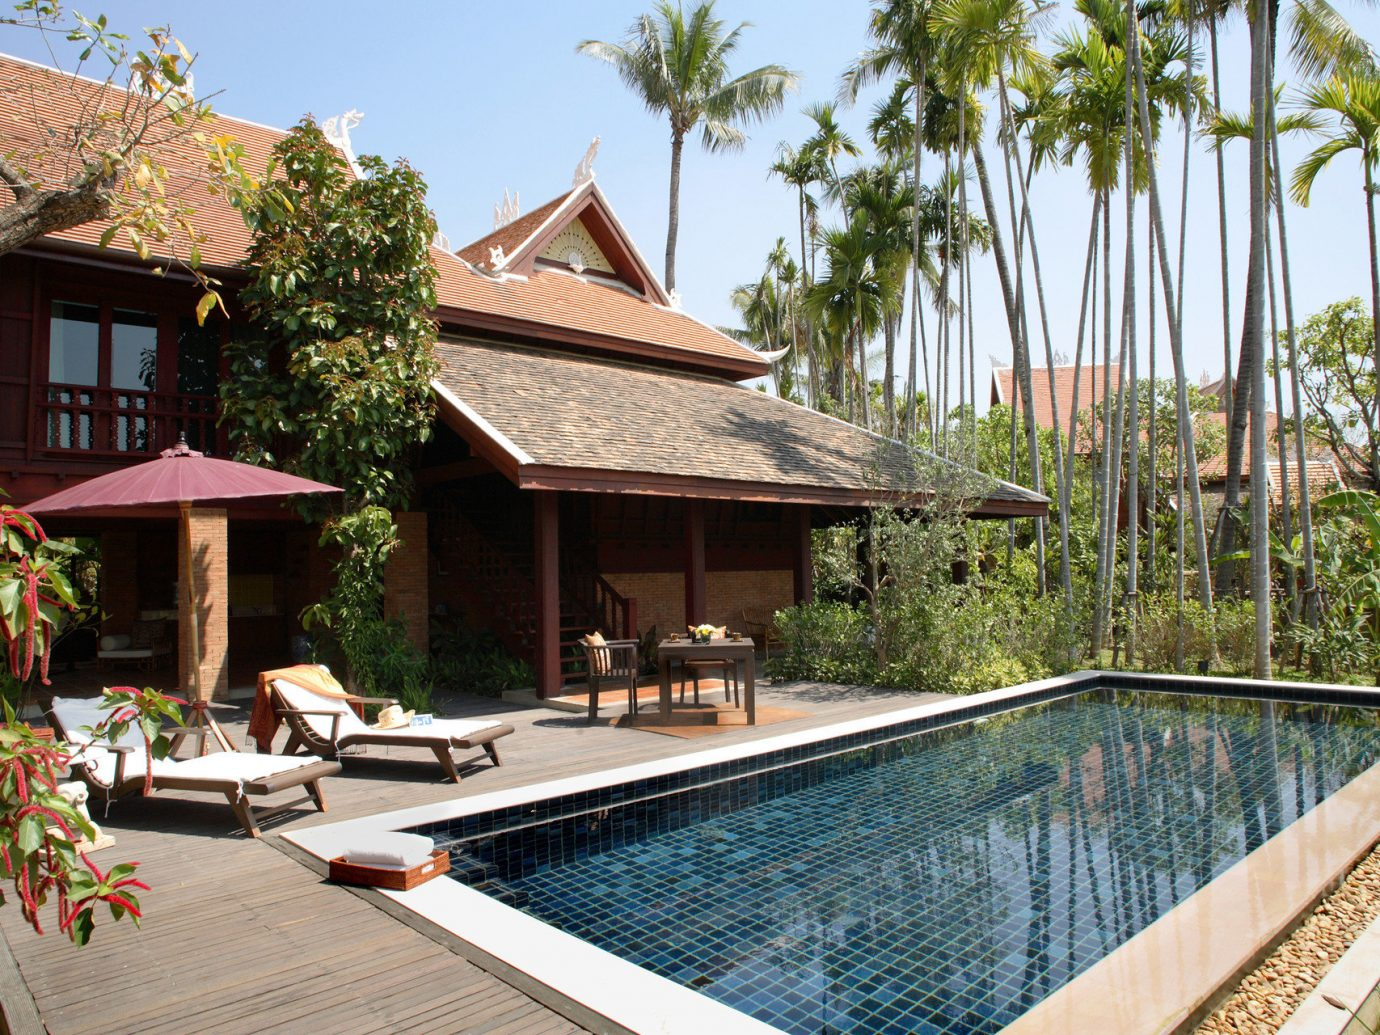 Hotels Romance outdoor tree building swimming pool property house estate Resort home Villa vacation real estate backyard cottage condominium mansion outdoor structure